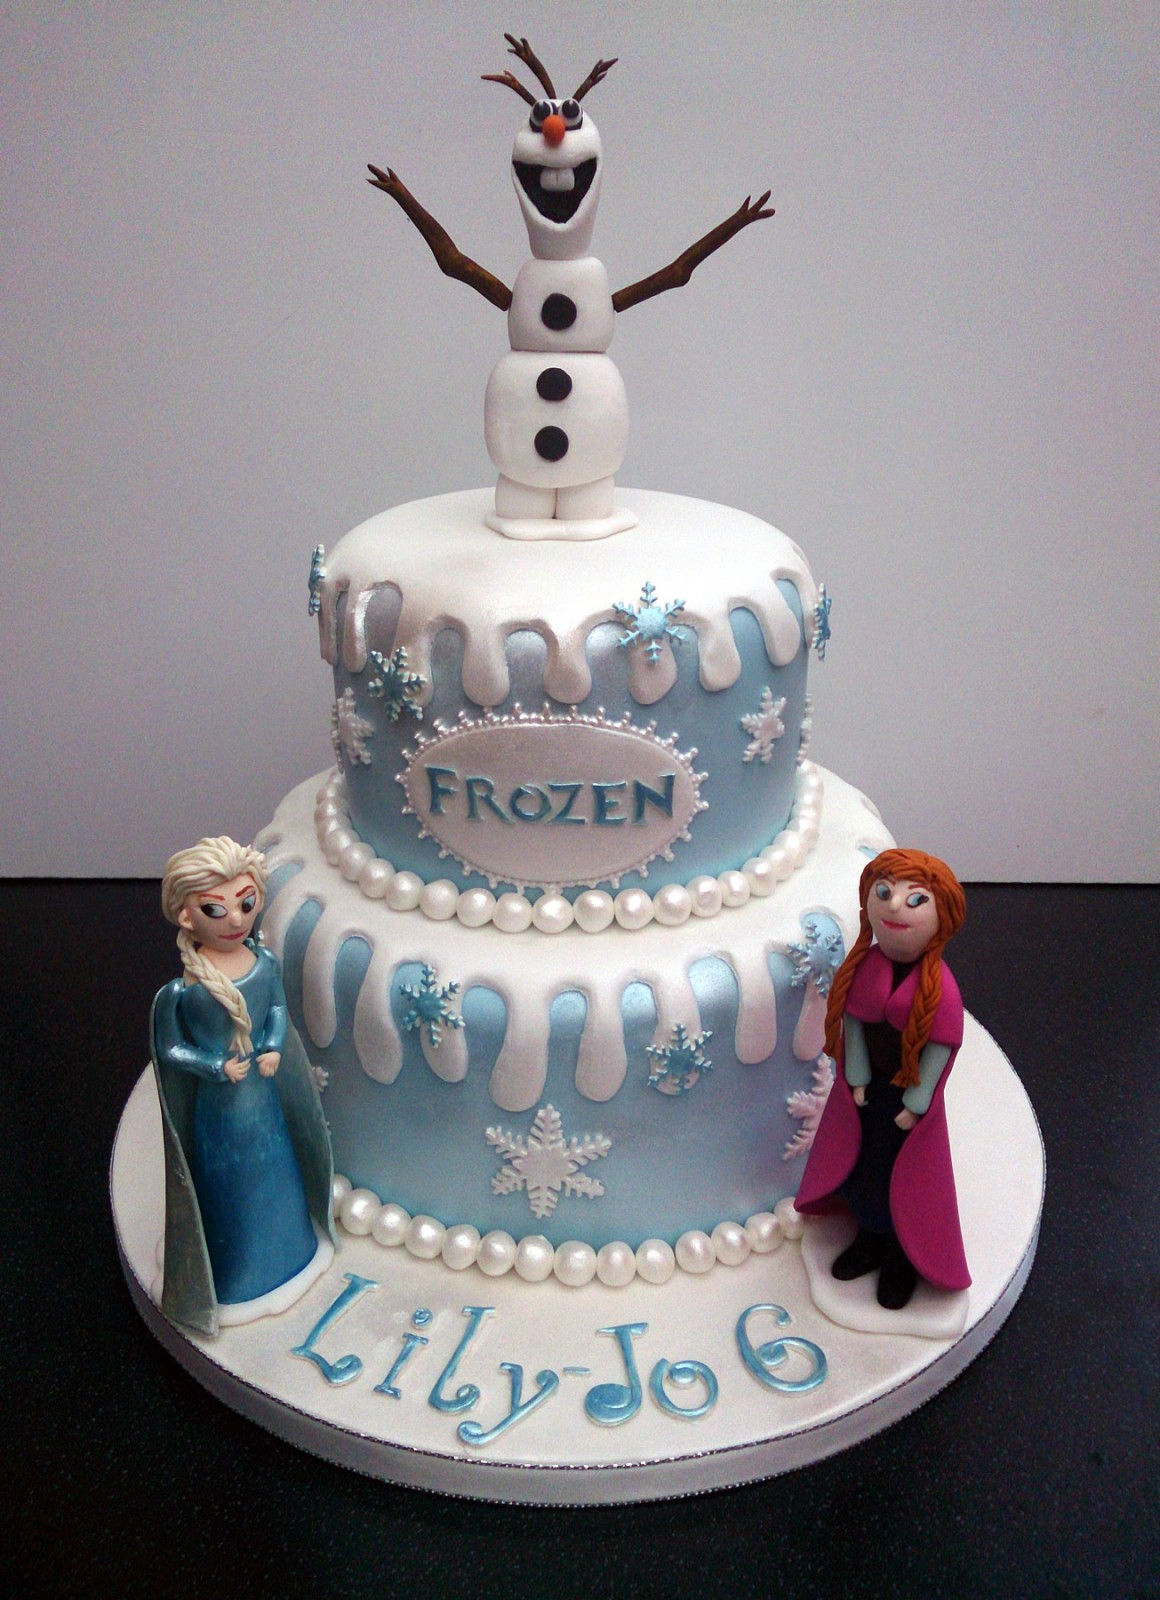 Cake Images With Frozen : Disney Frozen Themed Cake With Olaf Anna and Elsa   Susie ...